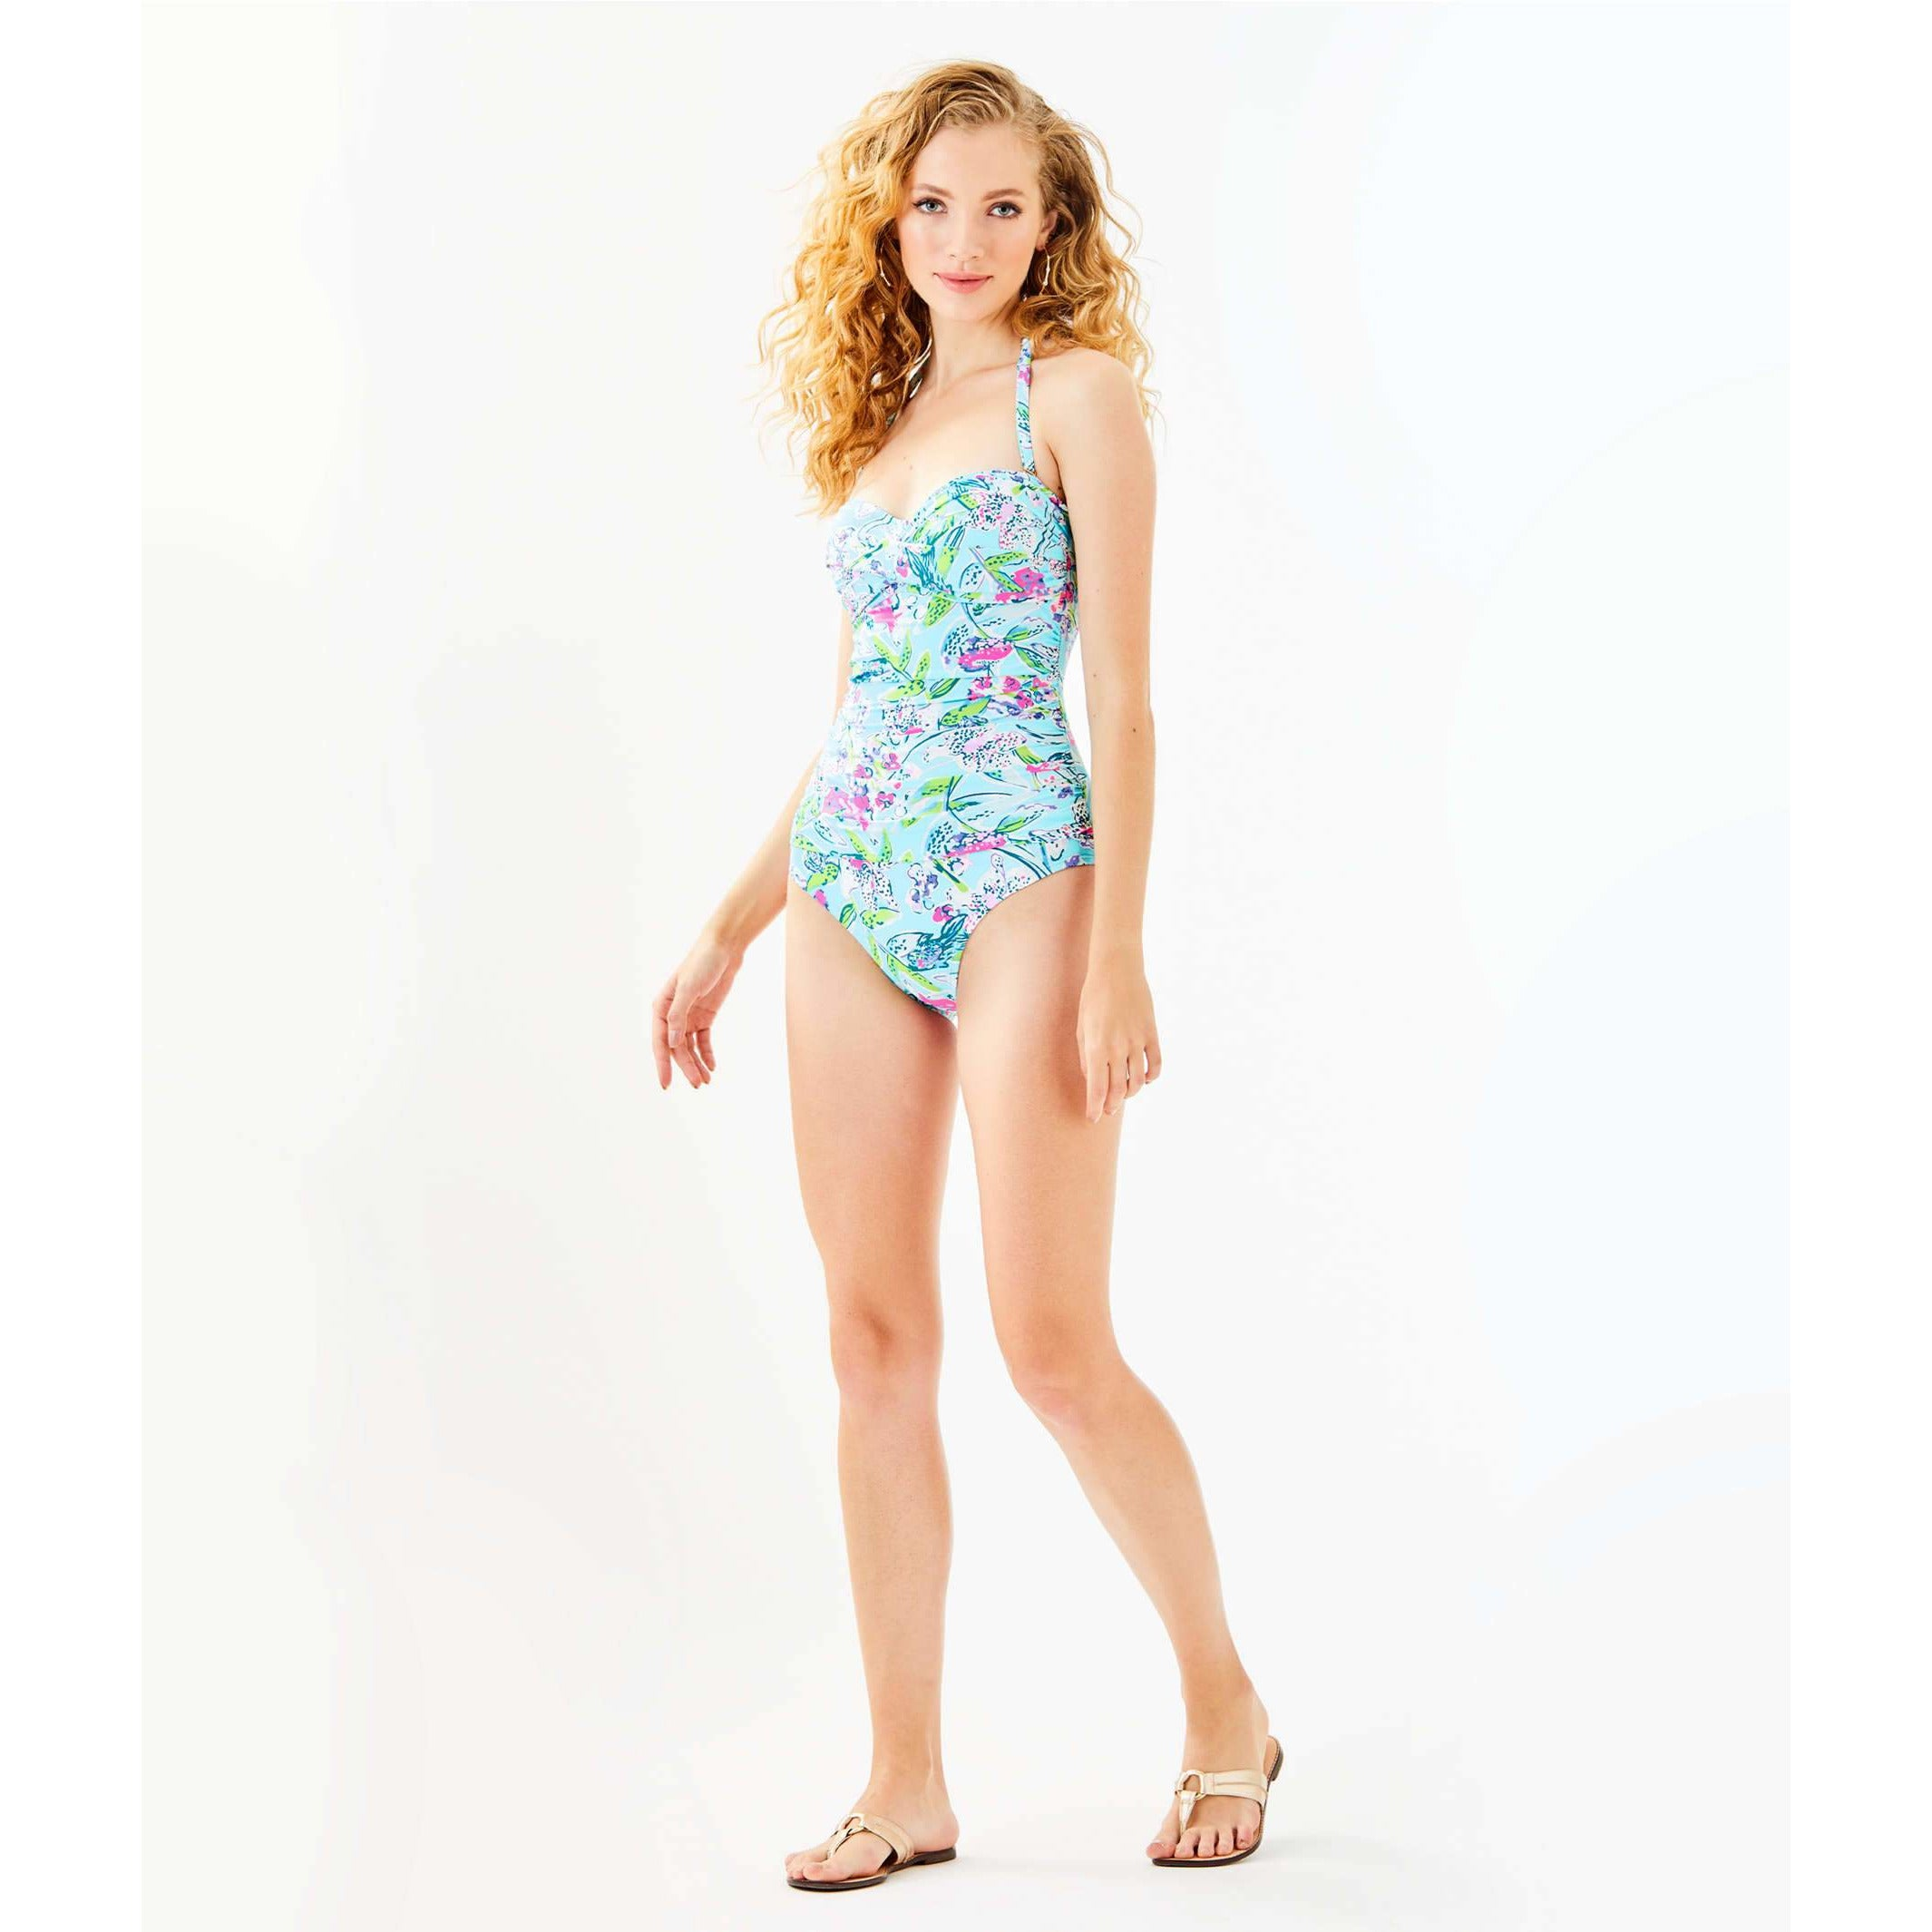 Lilly Pulitzer Flamenco One-Piece Swimsuit Bali Blue Sway This Way